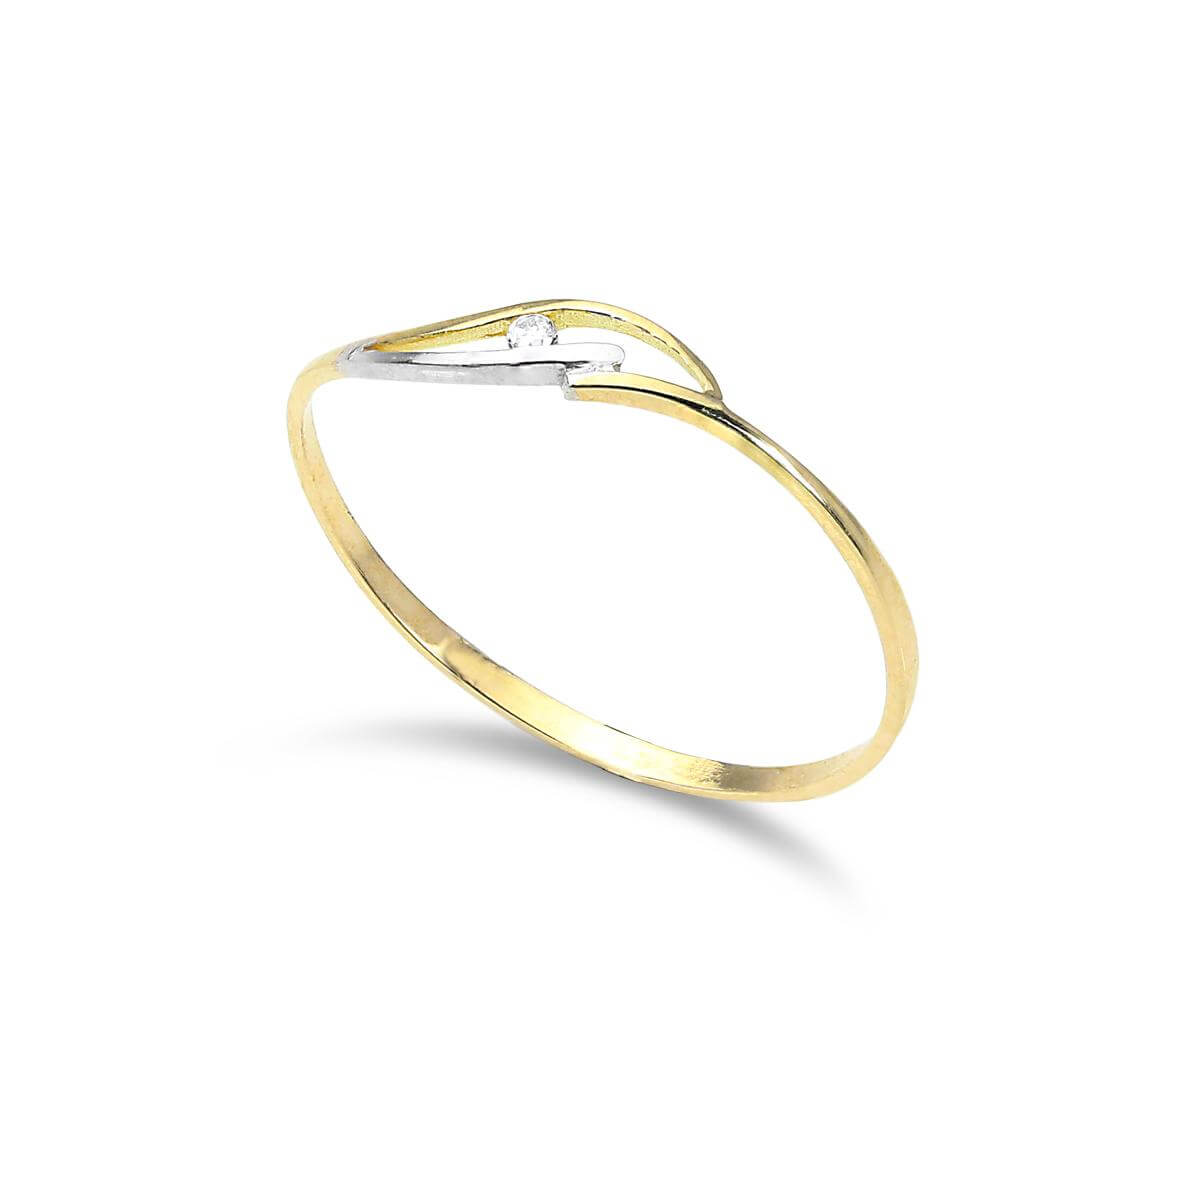 9ct Yellow & White Gold Wave 1mm Stacking Ring with CZ Crystal